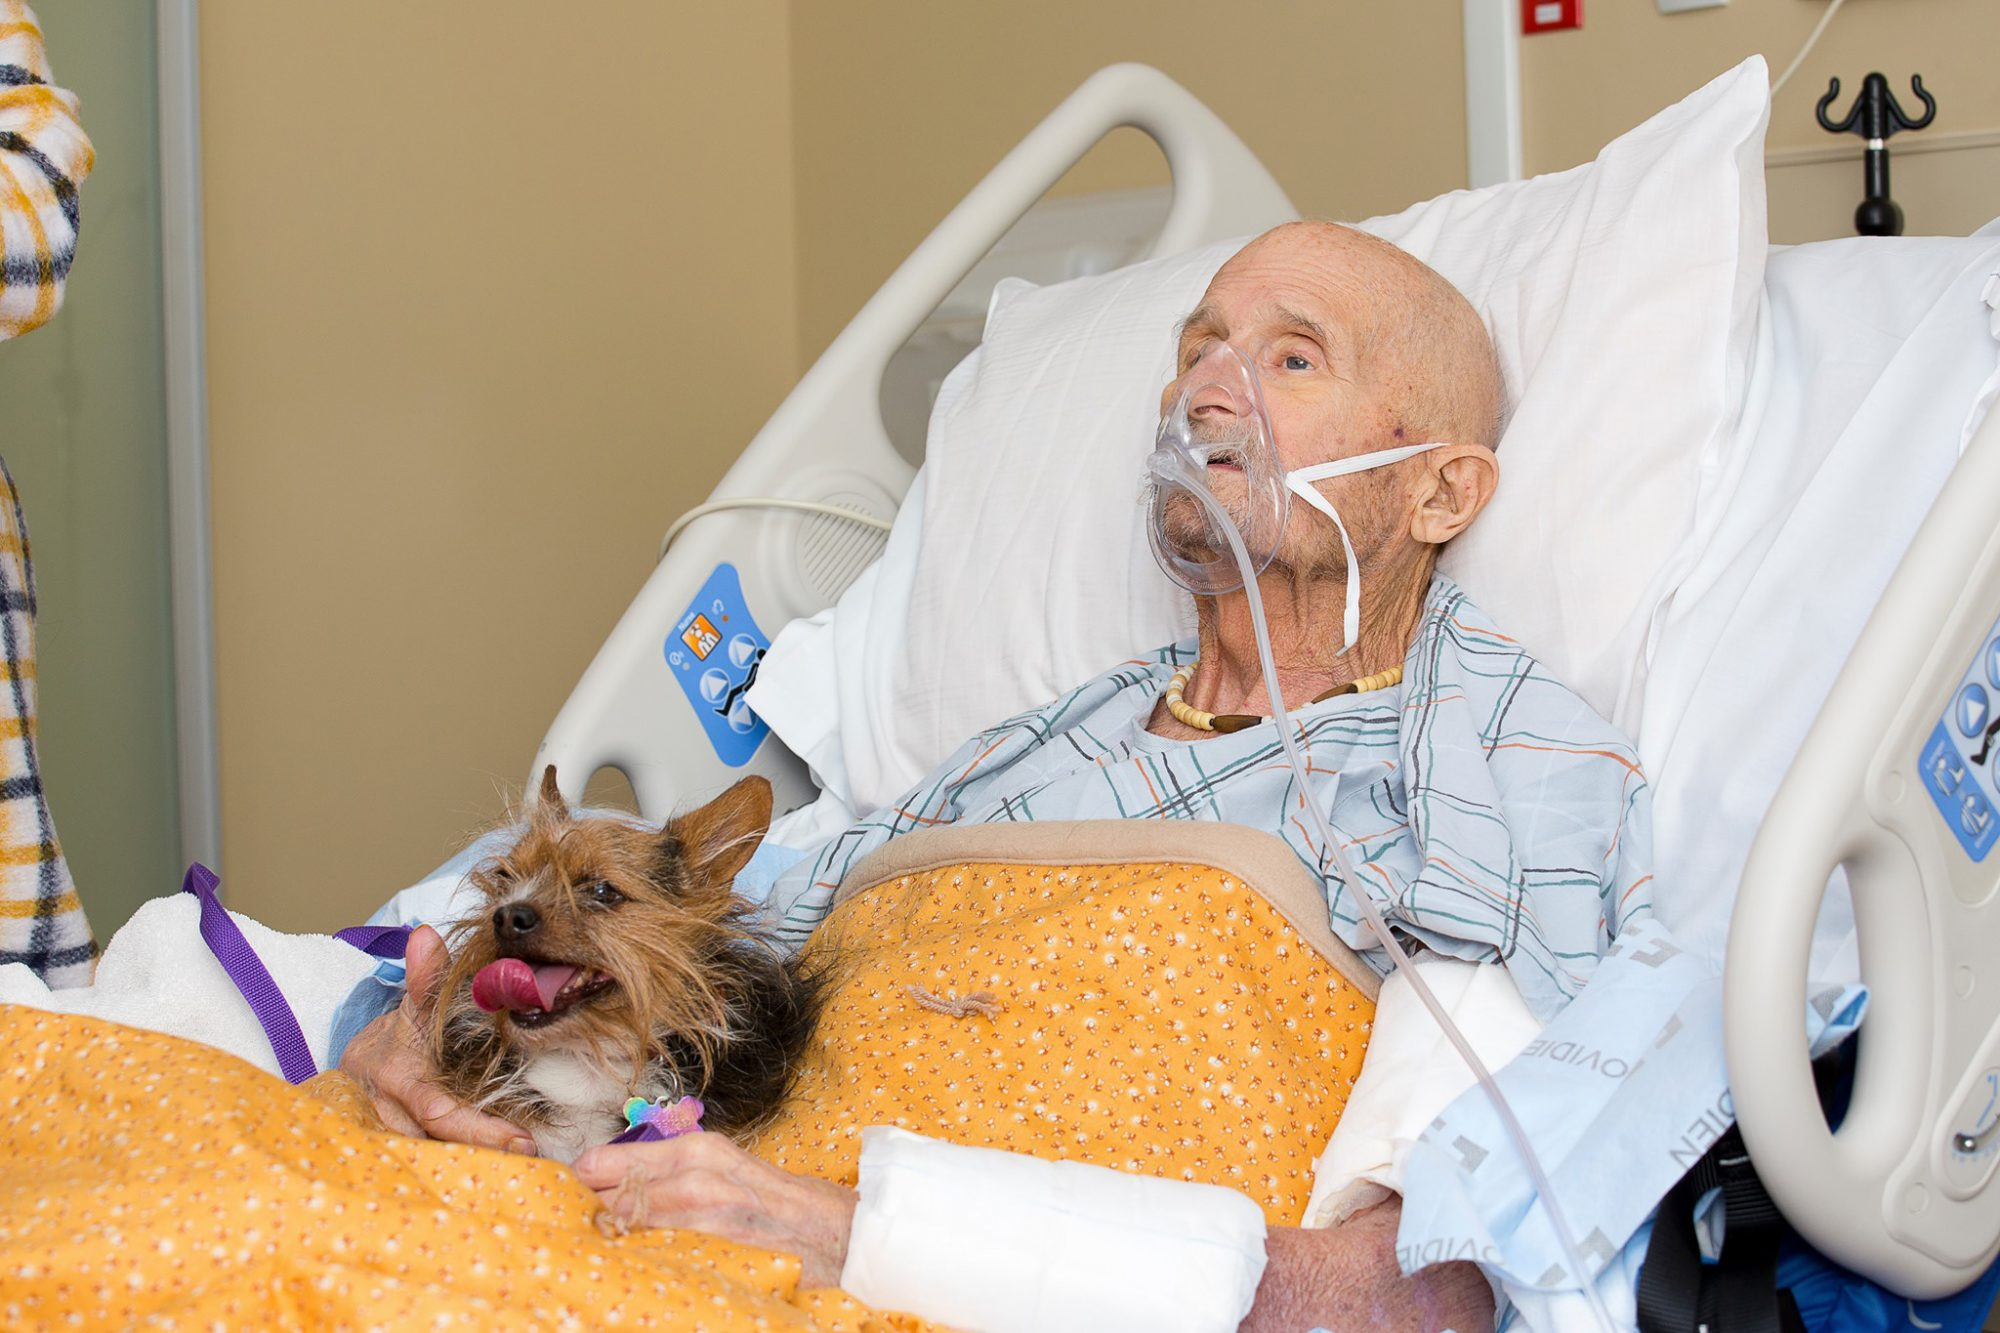 Yesterday was a special day for a Veteran named John Vincent and his beloved dog Patch.